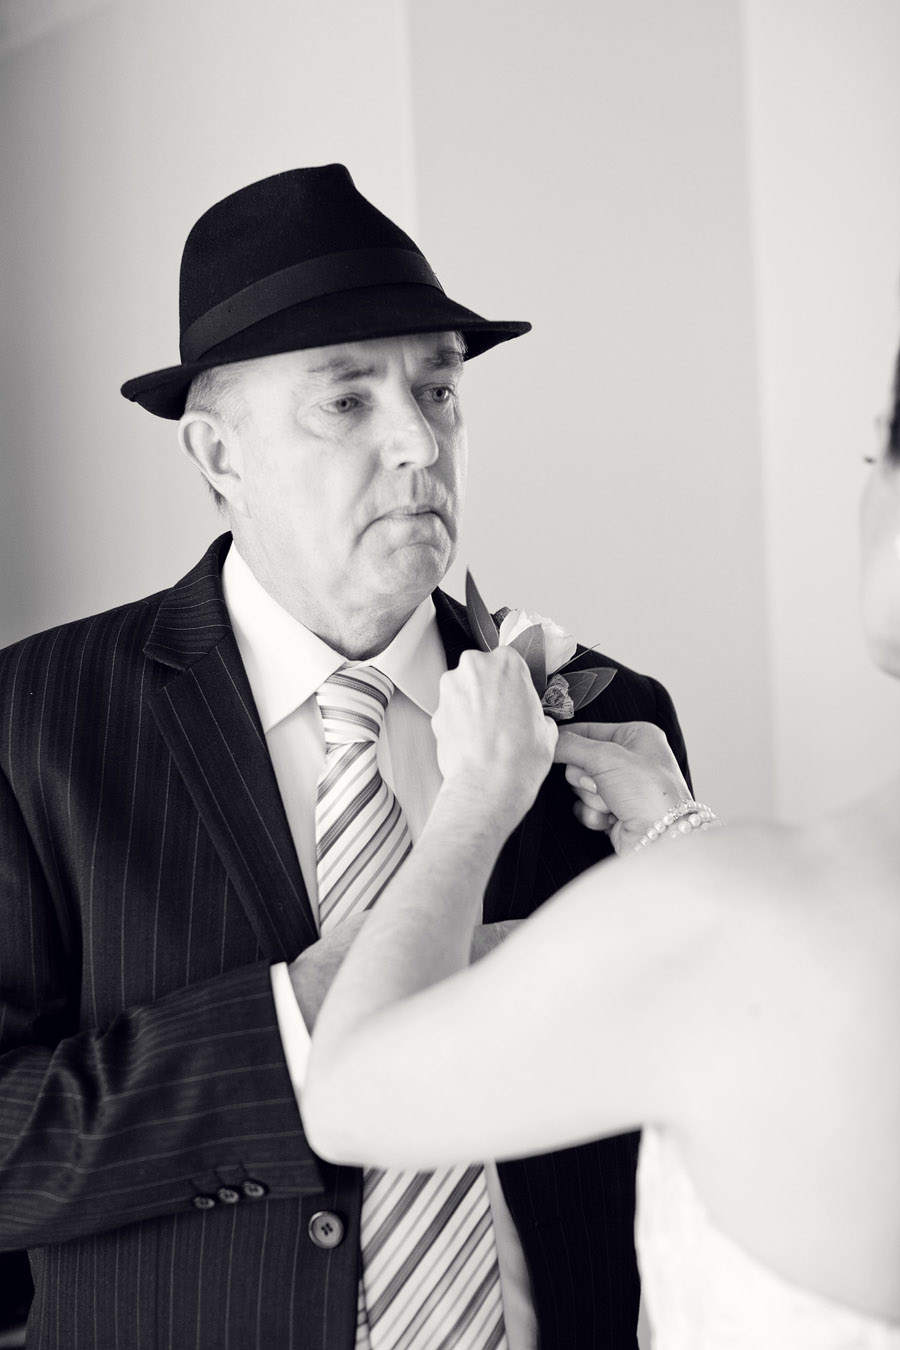 Sydney Wedding Photographer: Bride pinning boutonniere on father